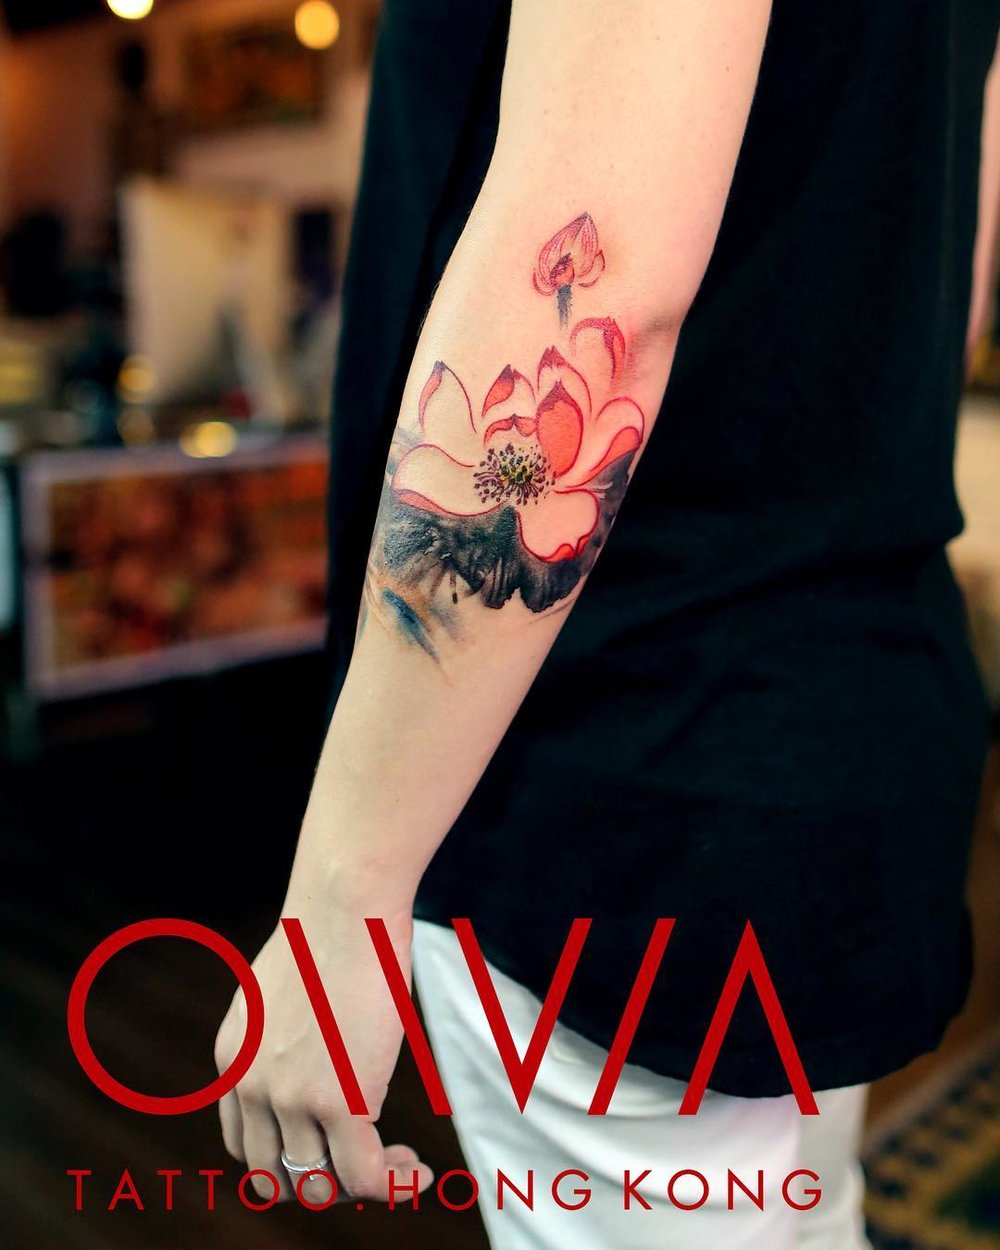 2018-fridays-tattoo-hong-kong-olivia-chinese-brush-lotus.jpg